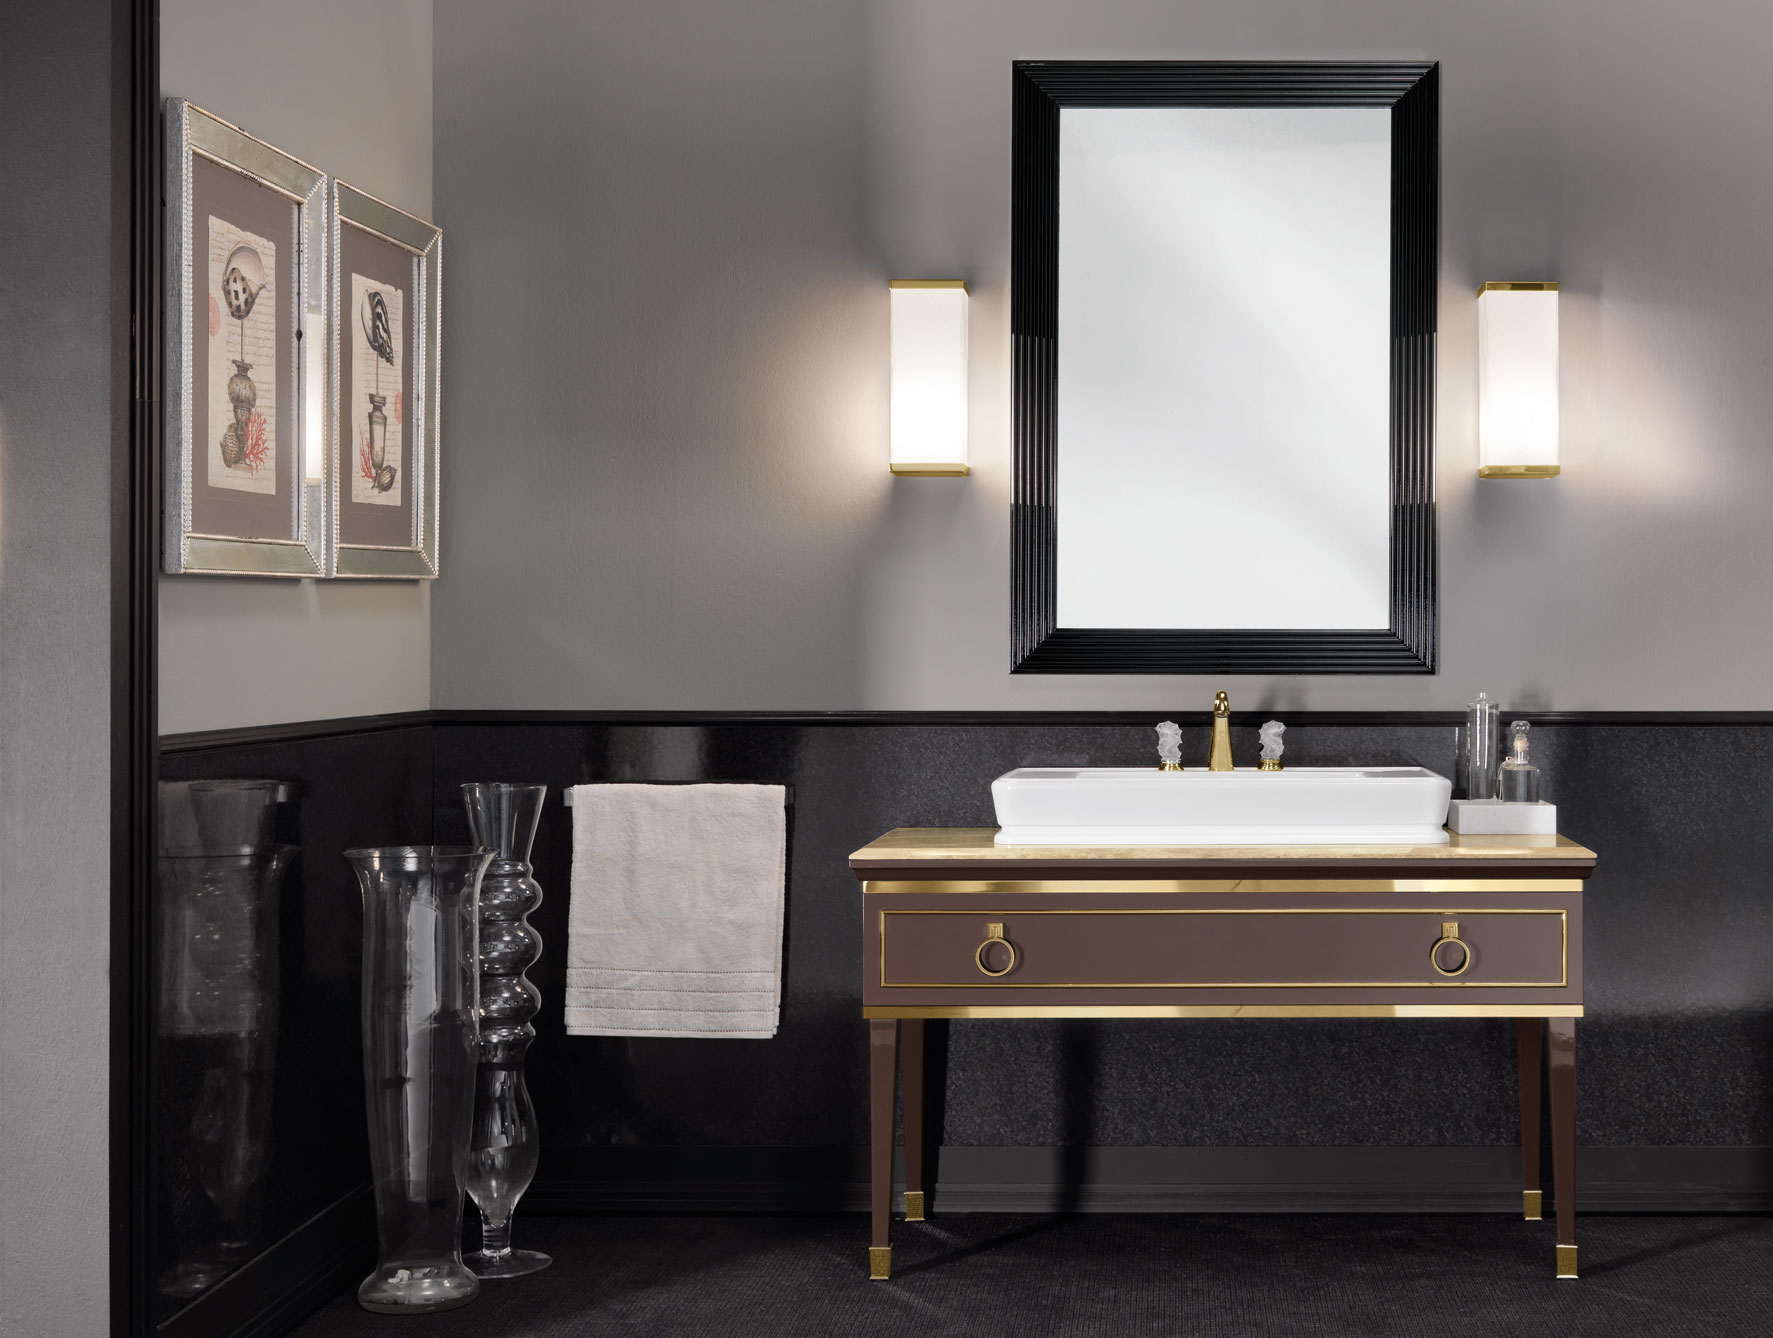 Majestic luxury bathroom vanities available in 2 colors. ♥ sfttywg